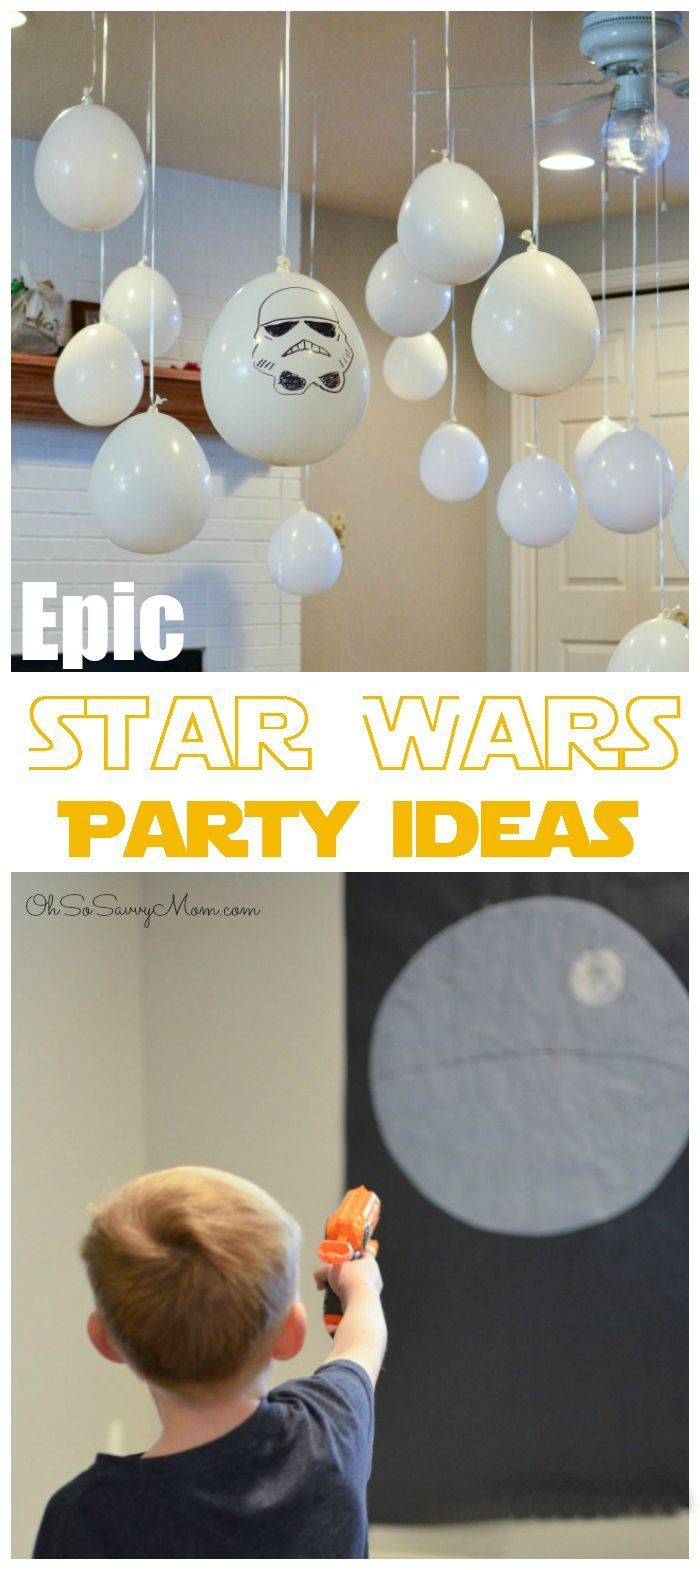 From learning how to move objects with The Force, to bringing down the Death Star, you'll love these Epic Star Wars Party Ideas! Throw the most awesome Star Wars Birthday Party on the cheap!